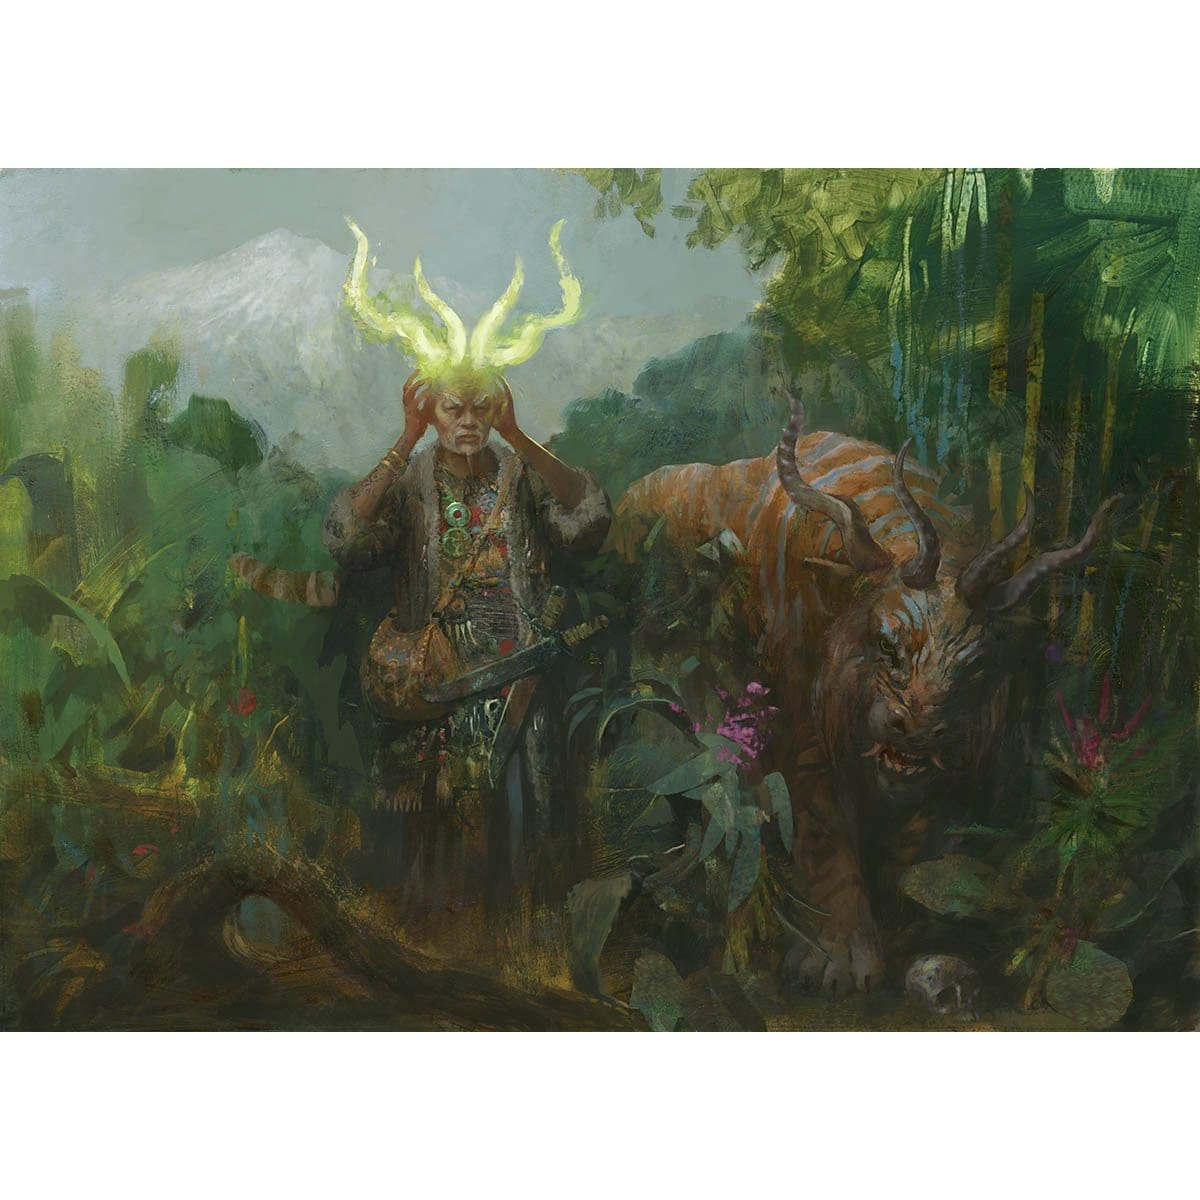 Druid of Horns Print - Print - Original Magic Art - Accessories for Magic the Gathering and other card games